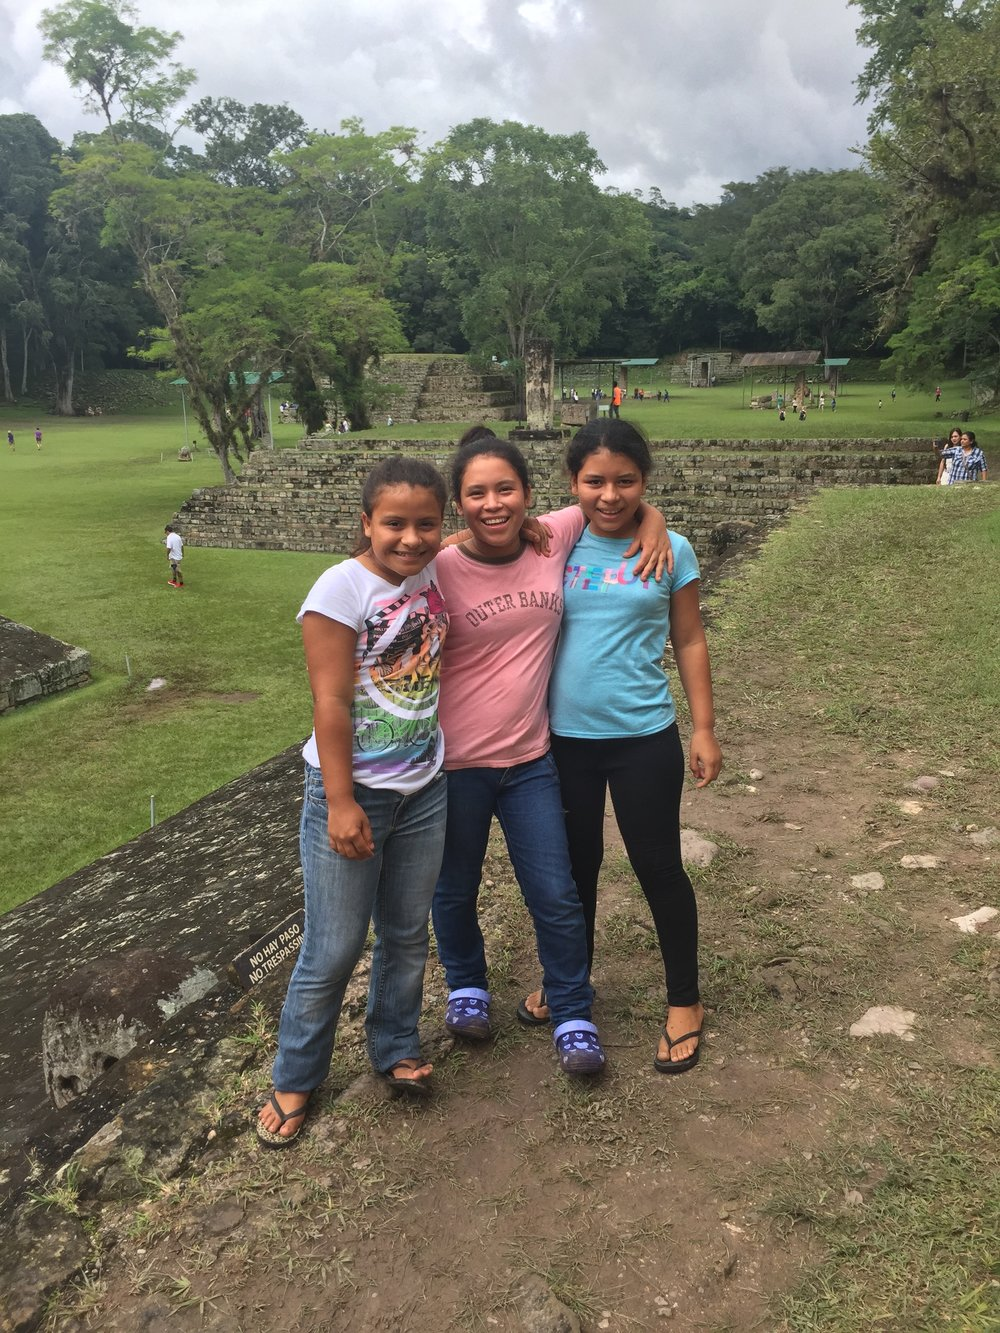 Elisa, pictured on the right, with her older sister and a friend visiting the Mayan Ruins in Copan Ruinas.